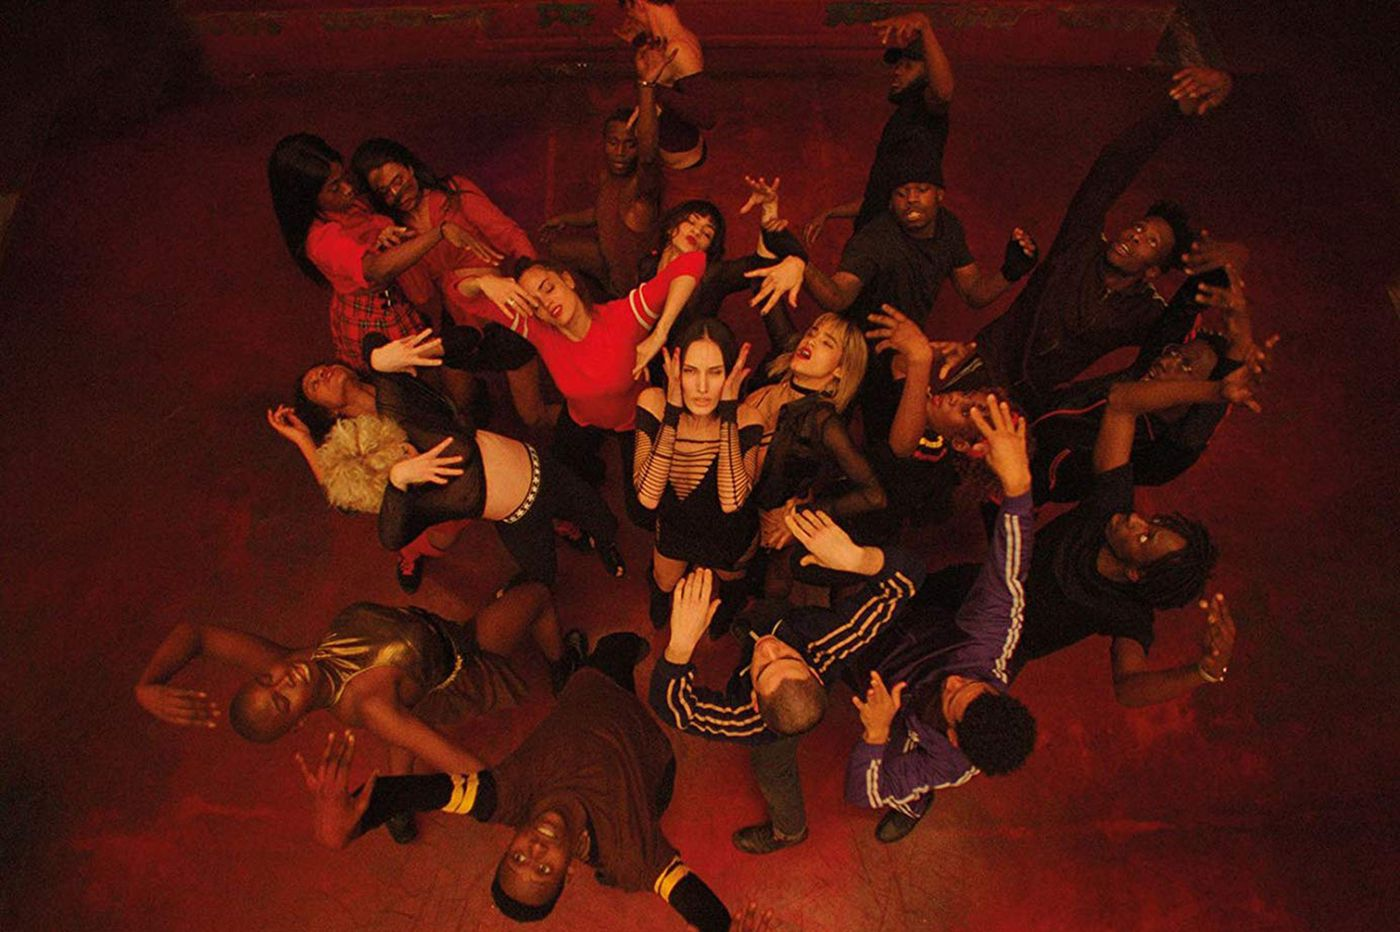 Gaspar Noe's 'Climax' is a party you don't want to be invited to | Movie review